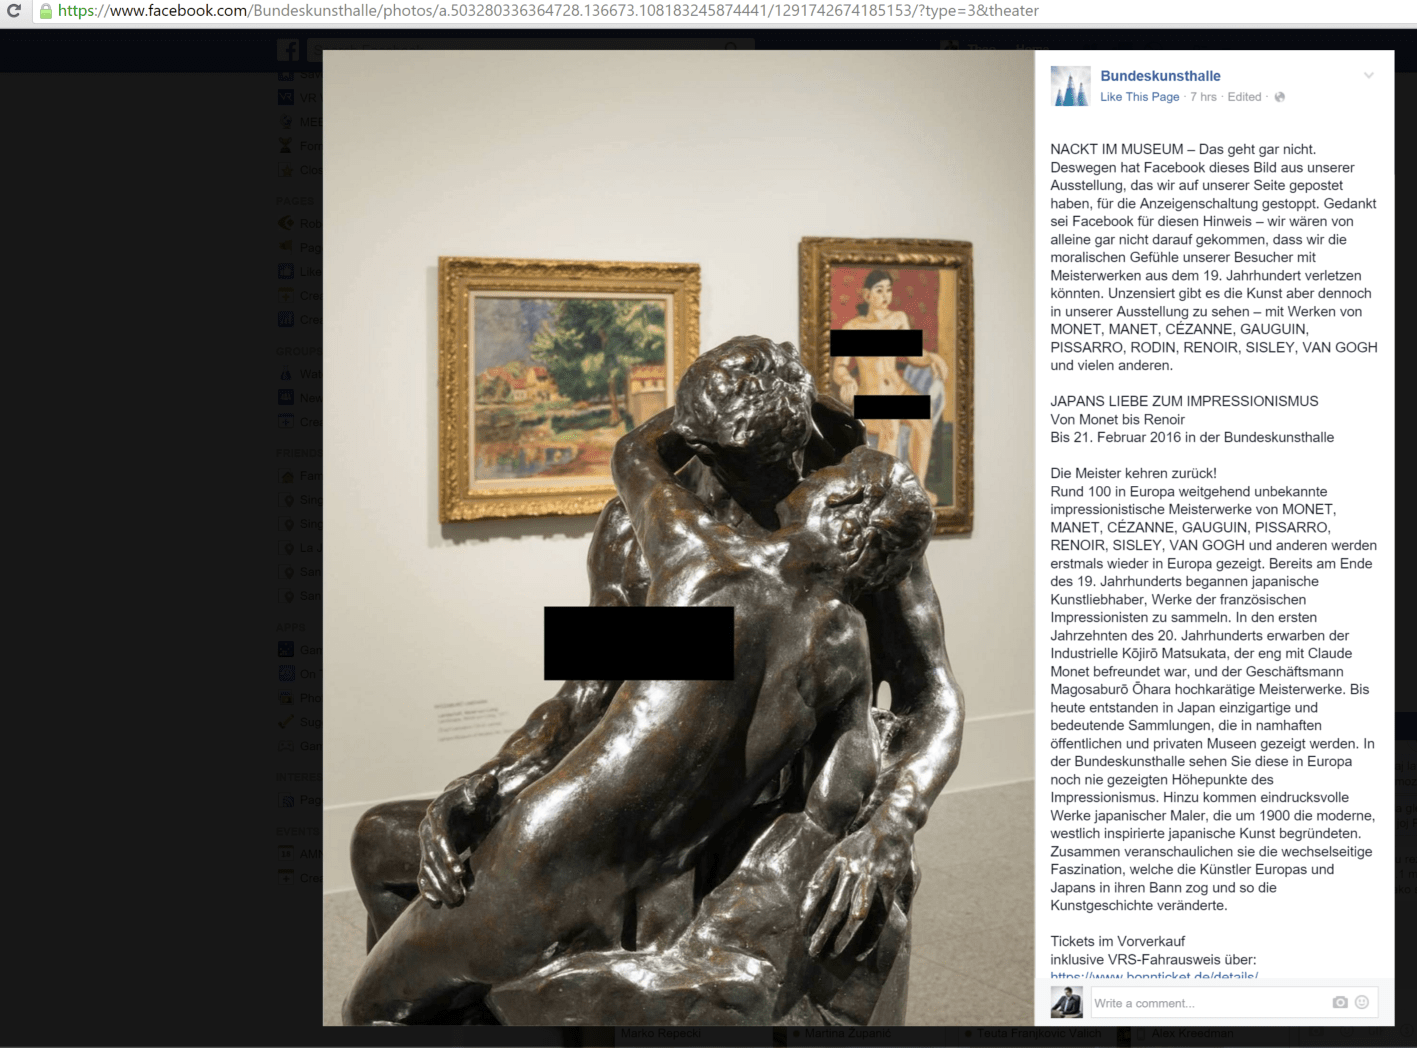 The museum was forced to censor the image in order to make Facebook censors happy.